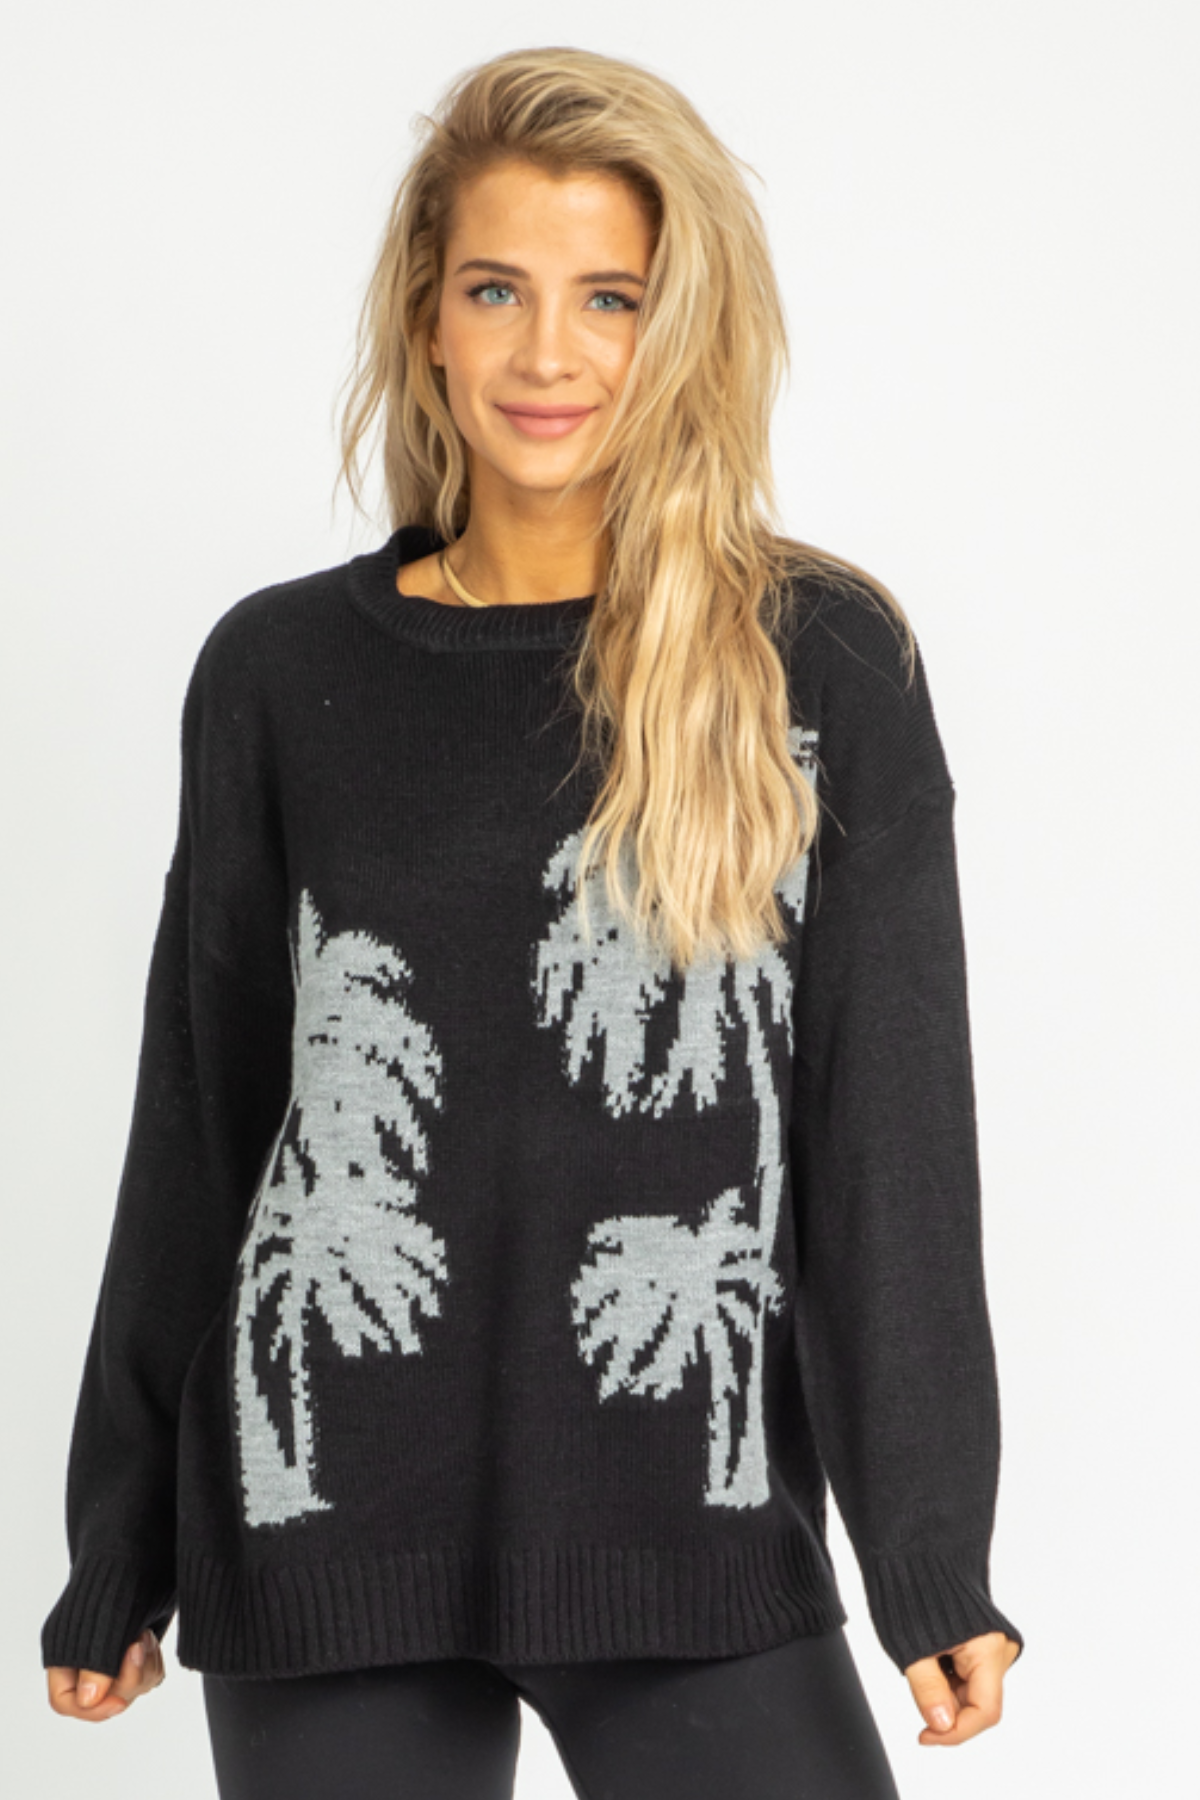 BLACK PALM KNIT SWEATER